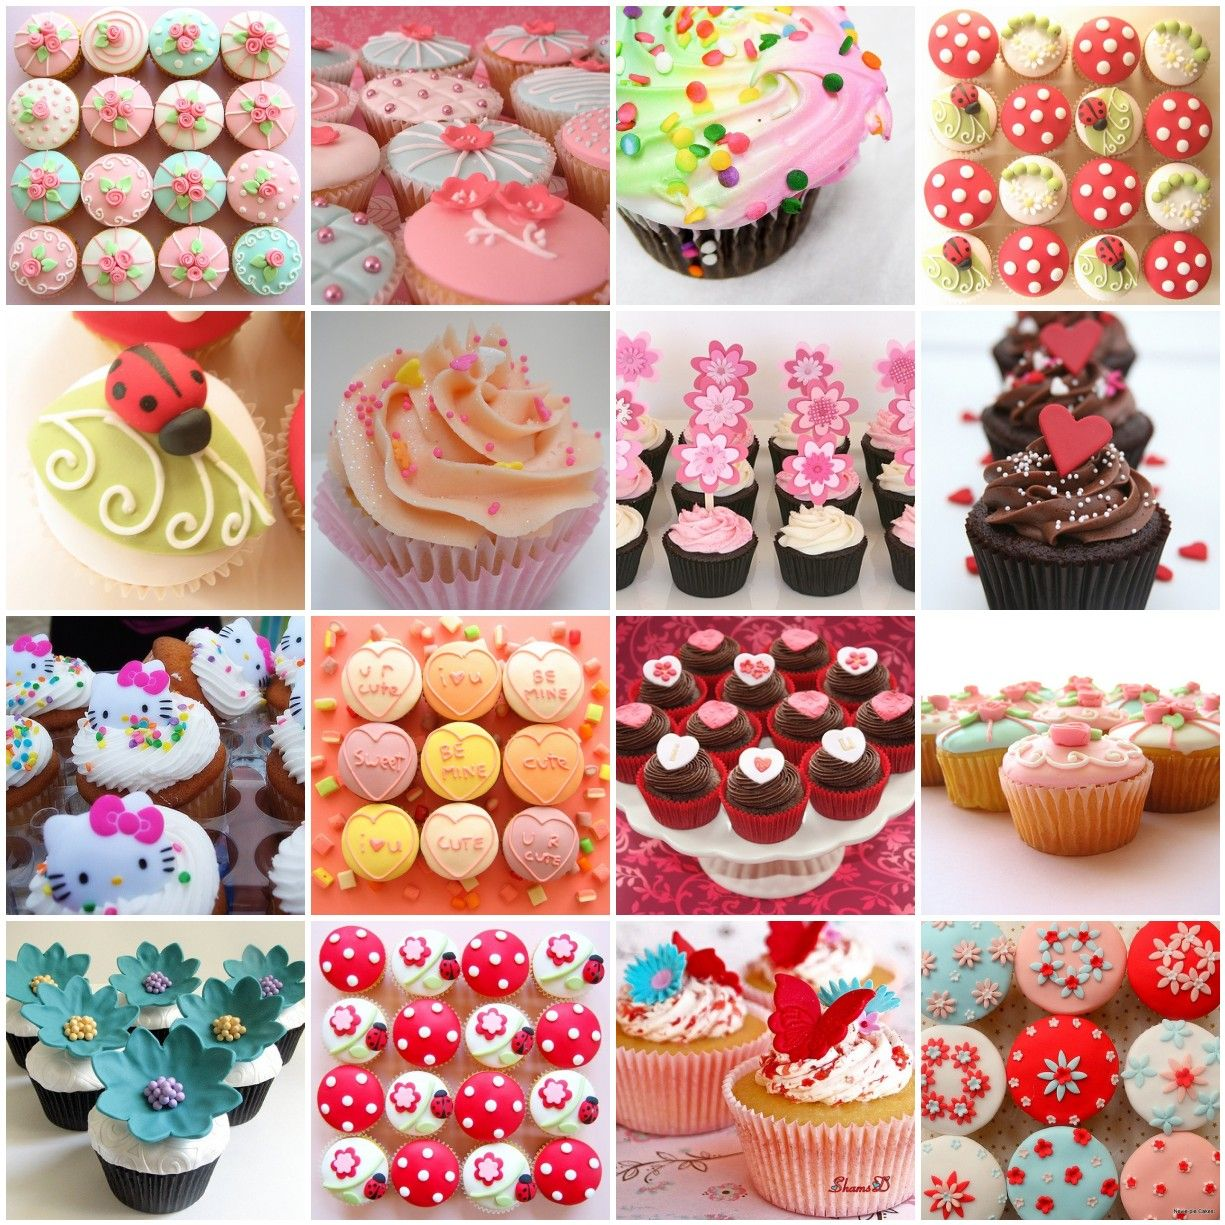 cupcake decorating ideas Party goods Pinterest Cake